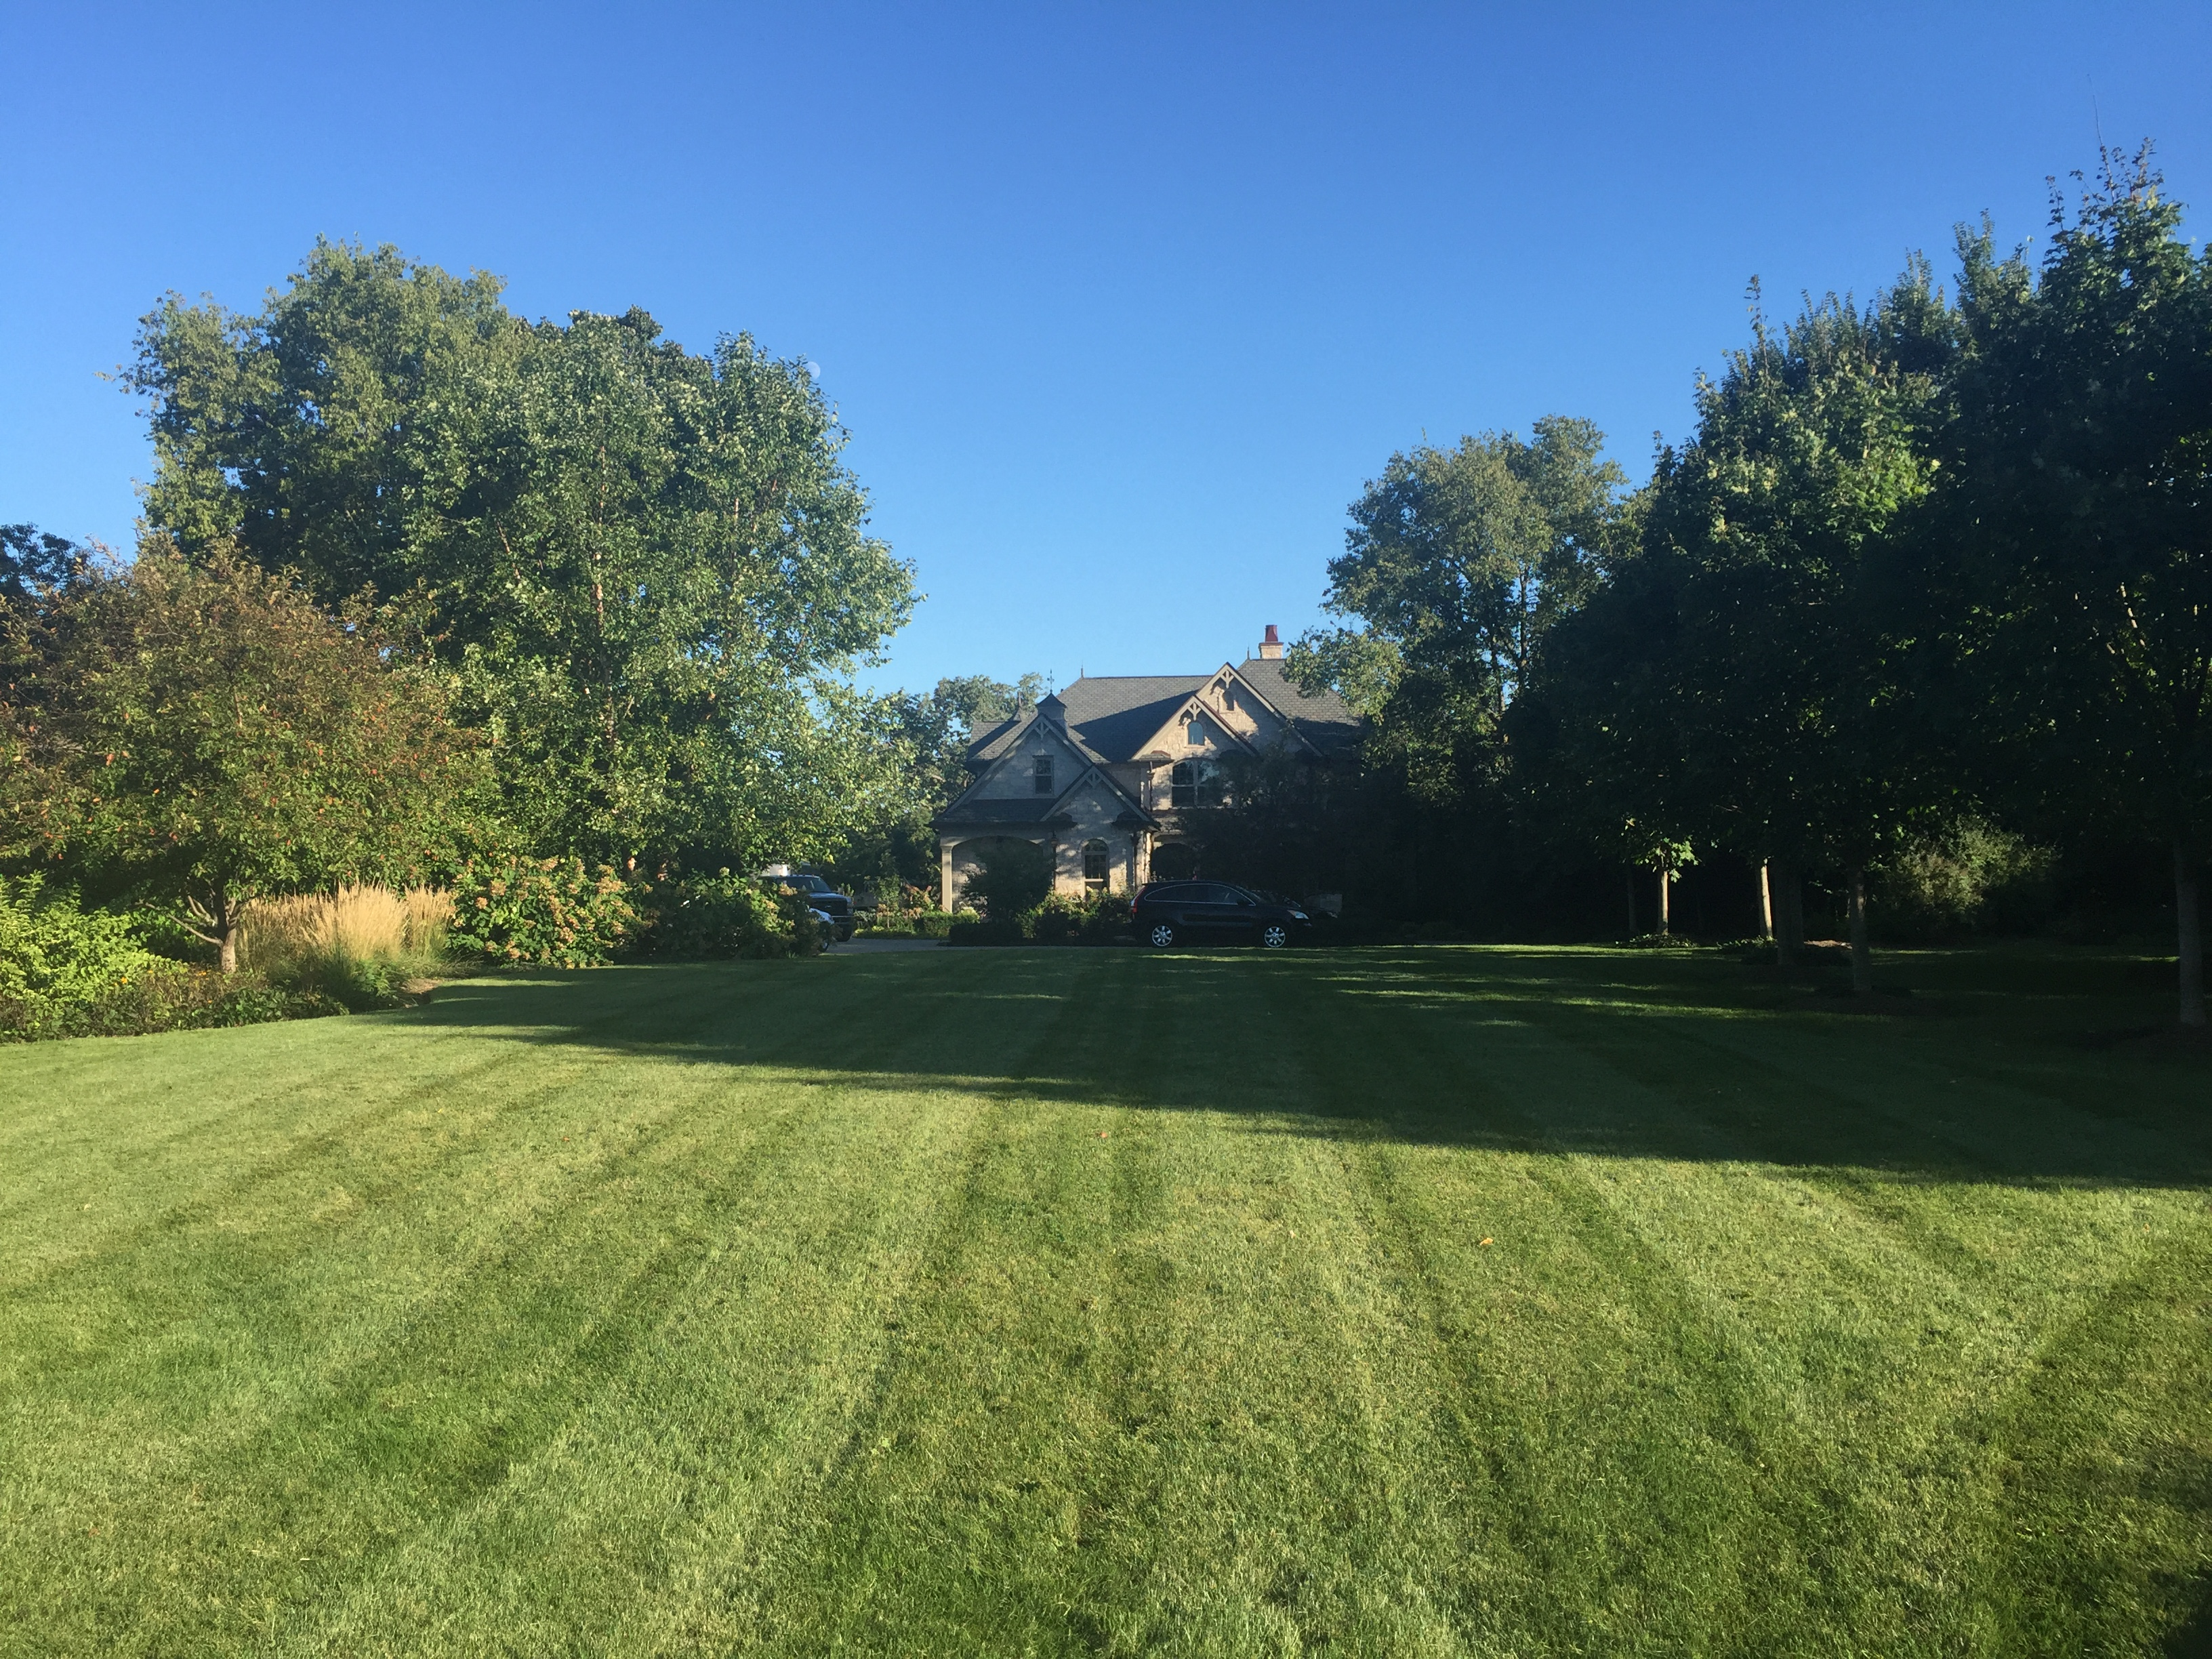 Yard mowing company in Yorkville, IL, 60560